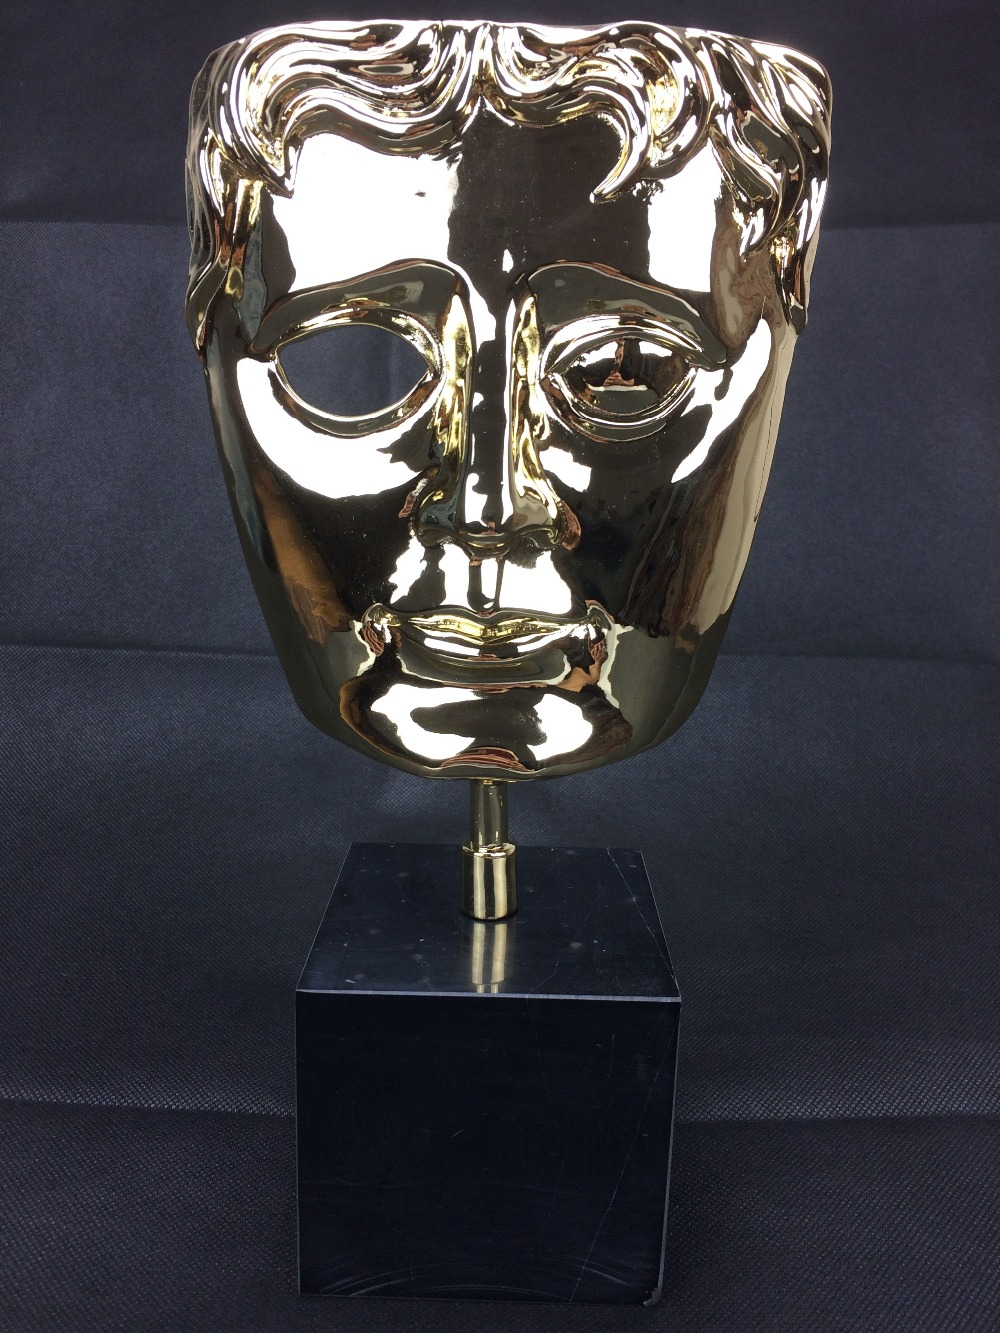 BAFTA Awards, Metal replica BAFTA Awards ,Britsish Academy Film Awards